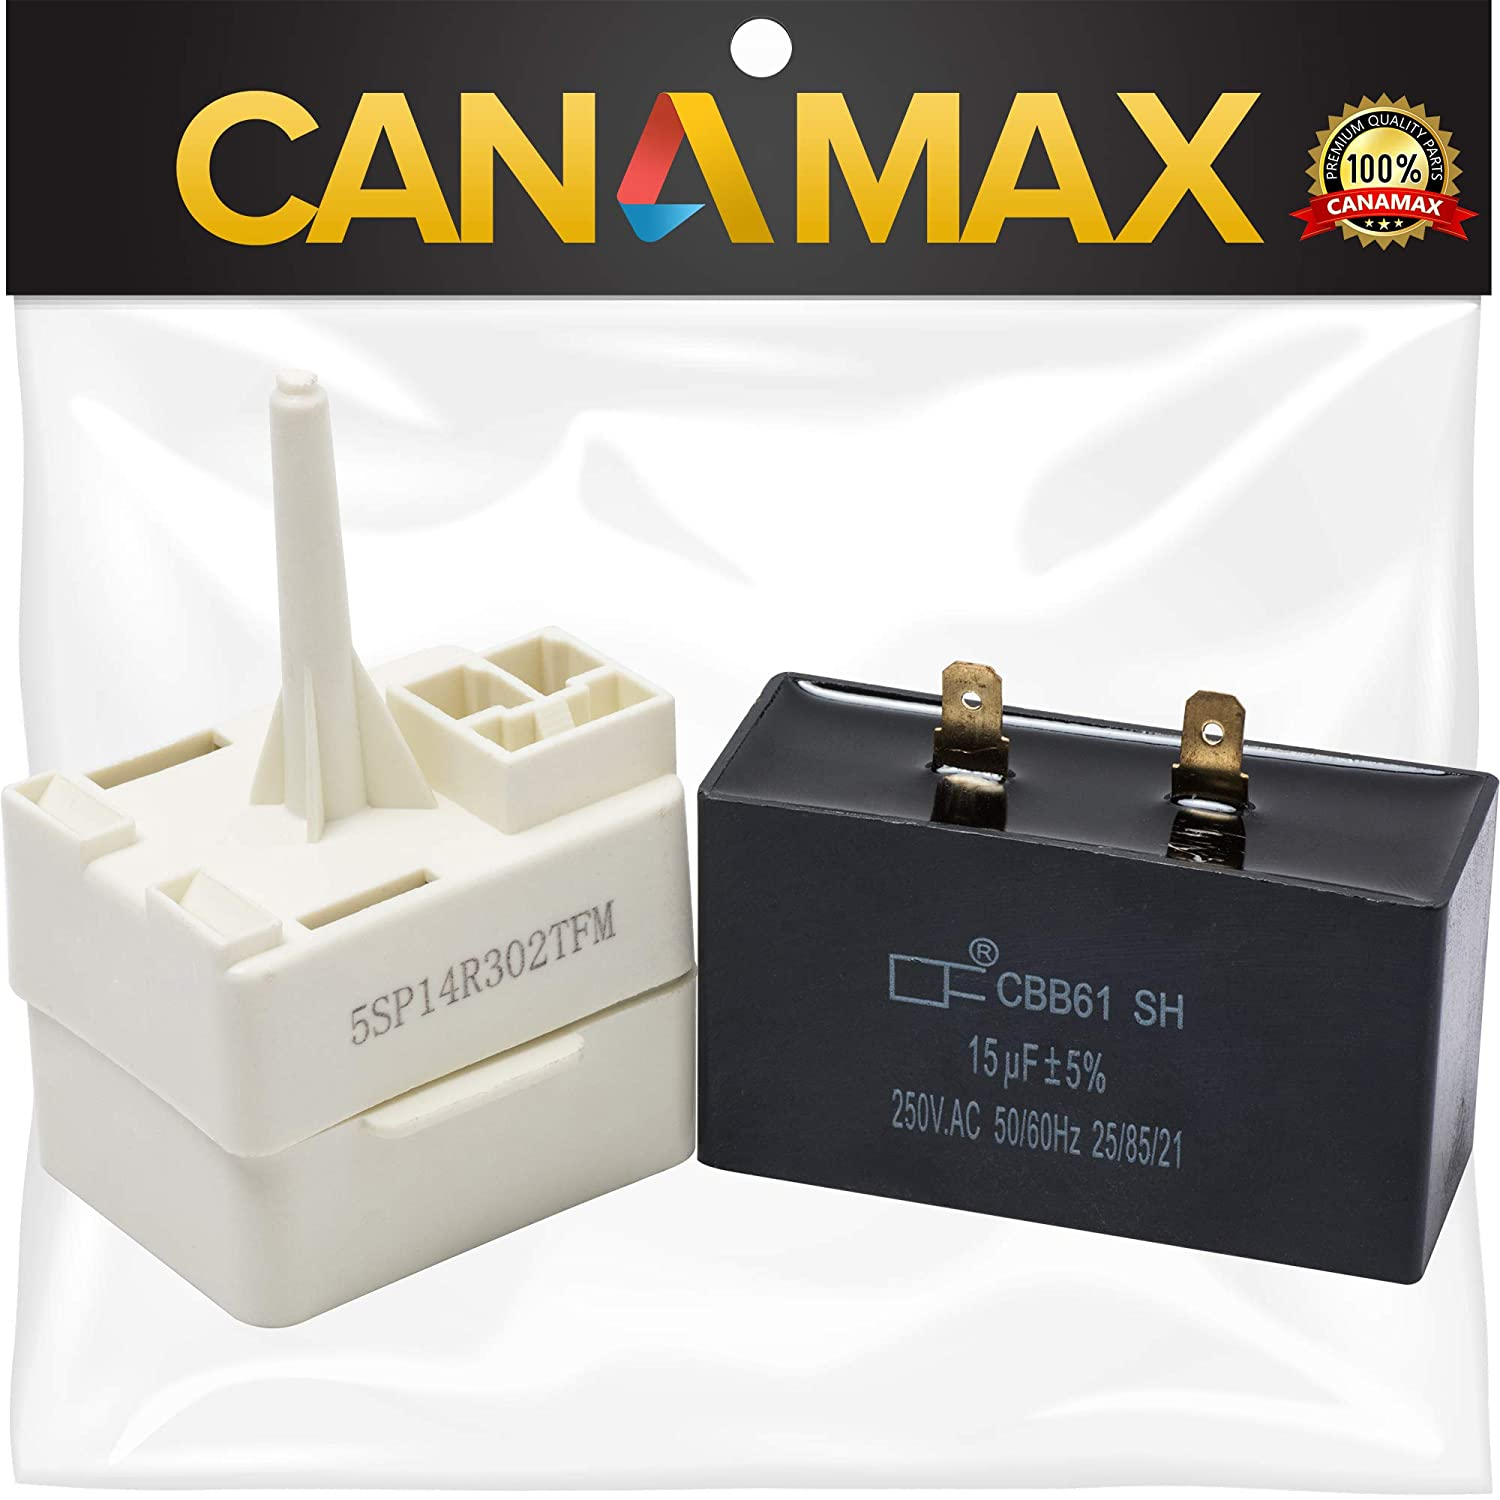 W10613606 Refrigerator Compressor Start Relay and Capacitor Premium Replacement Part by Canamax - Compatible with Whirlpool KitchenAid Kenmore Refrigerators- Replaces W10416065, PS8746522, 67003186